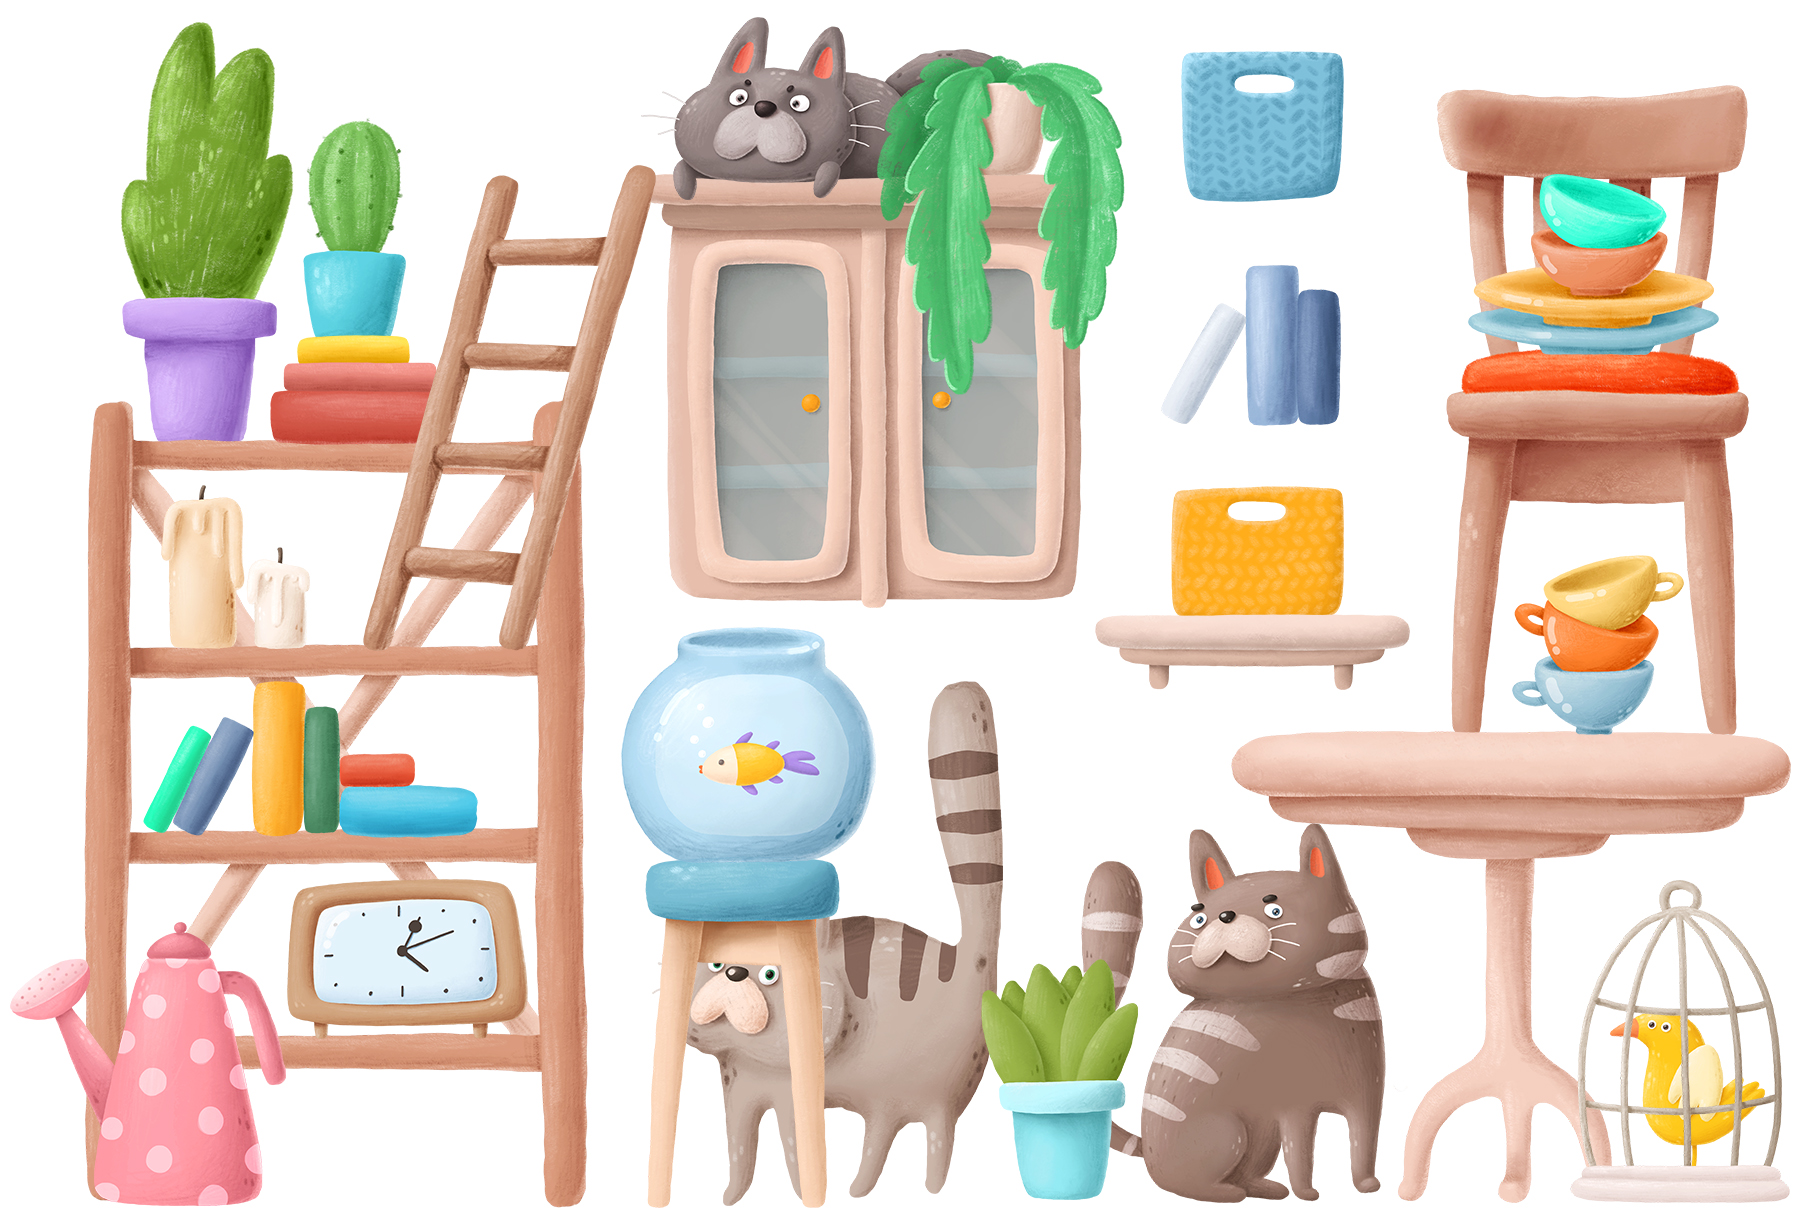 Home clipart pack 2 example image 1